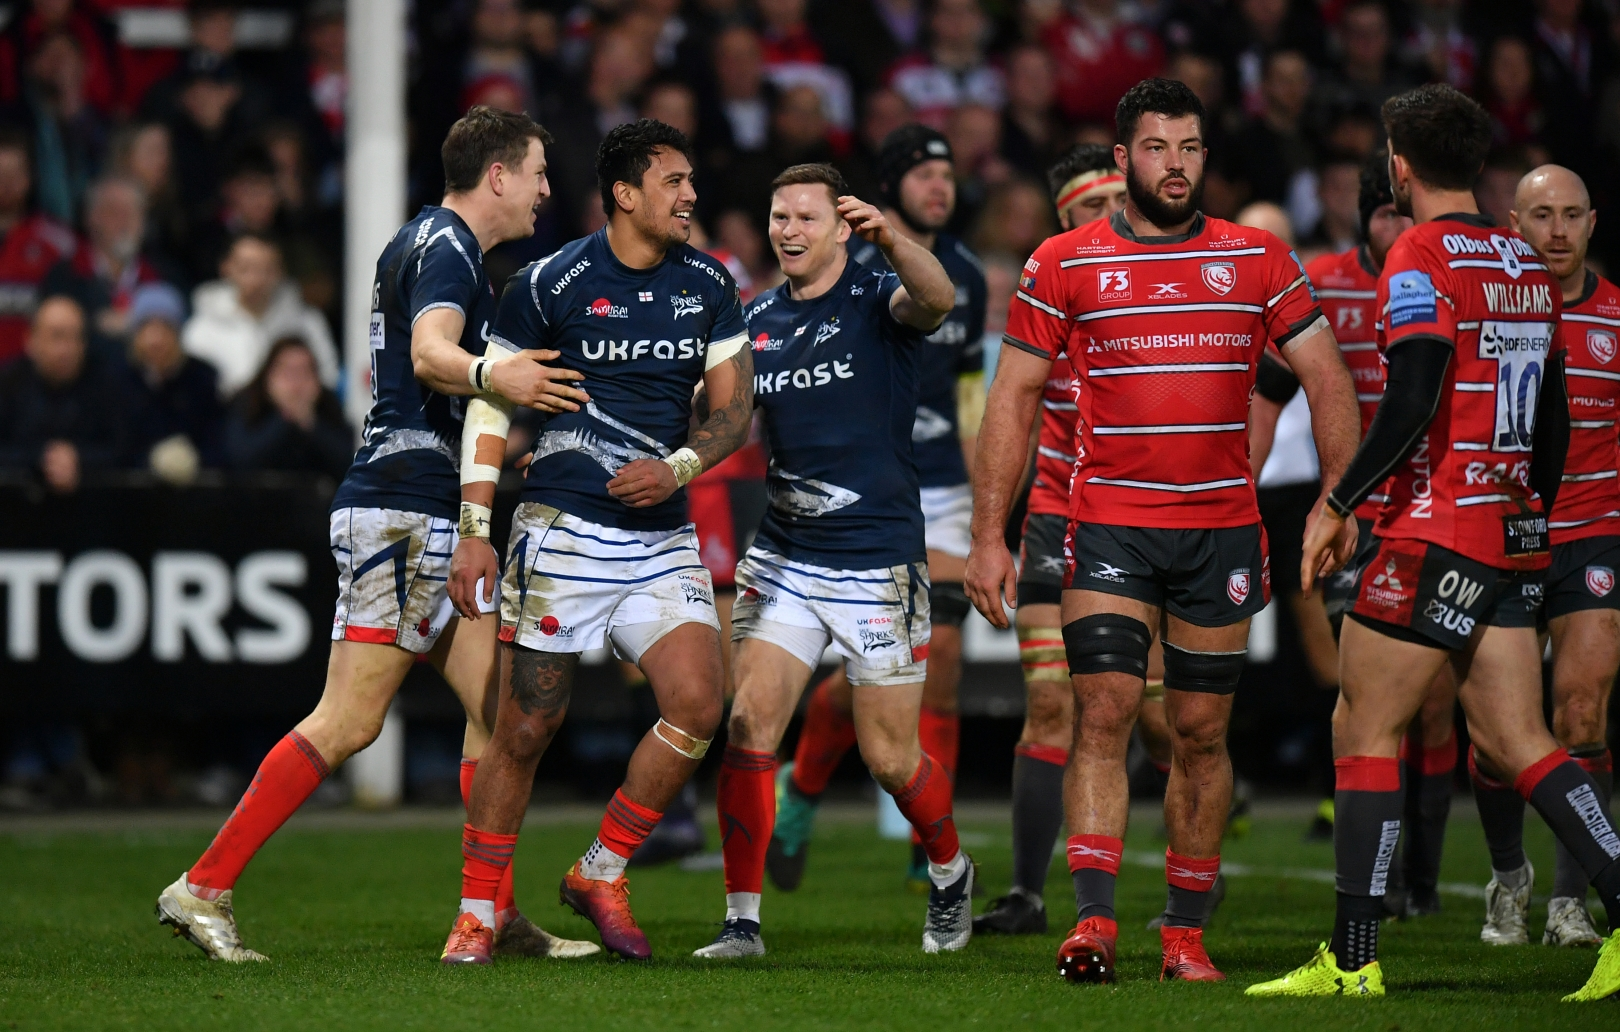 BACK TO THE MATCH – GLOUCESTER RUGBY 15 – 30 SALE SHARKS